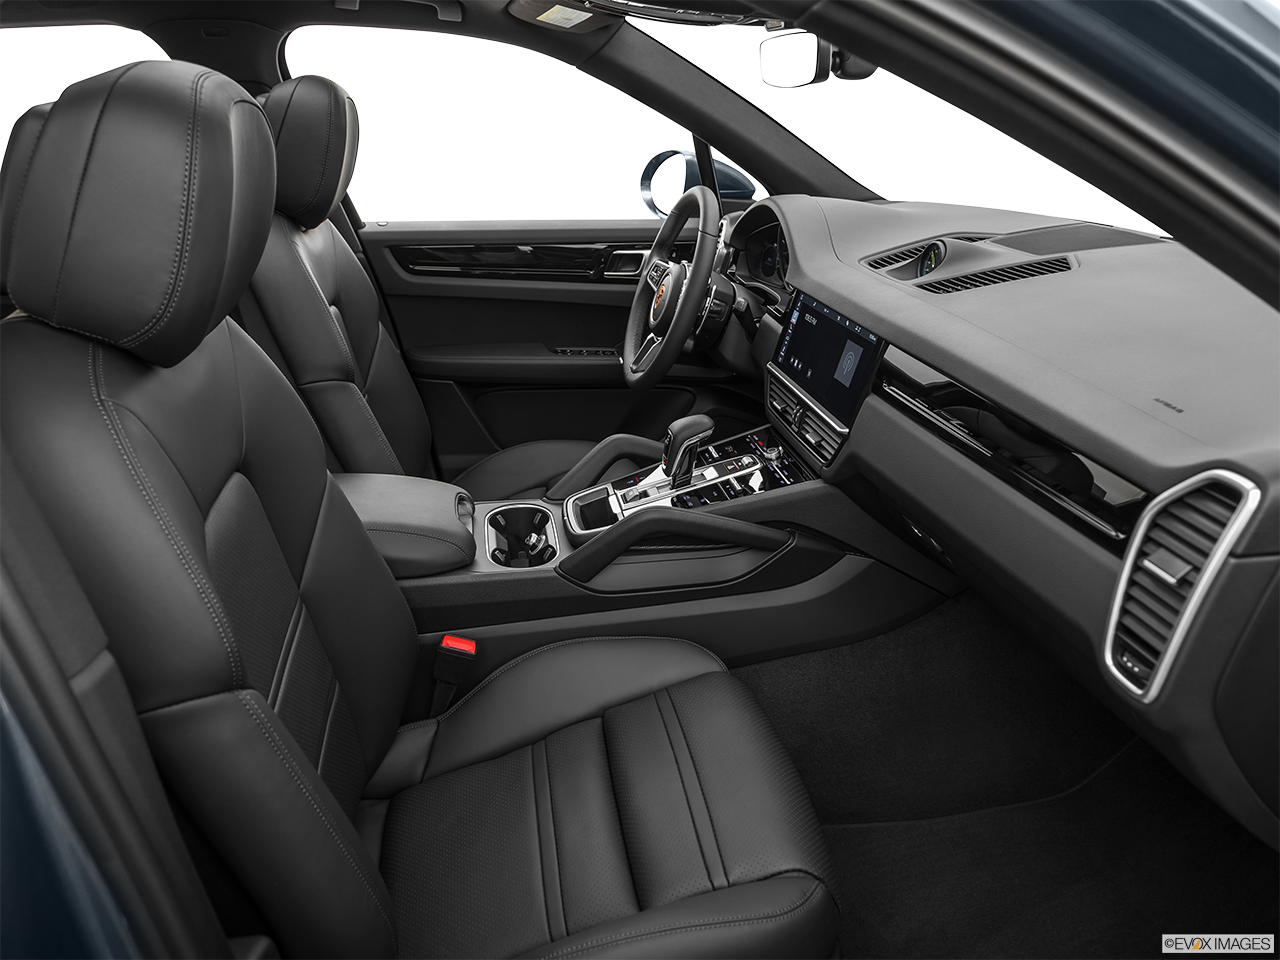 Interior view of the Porsche Cayenne S E Hybrid